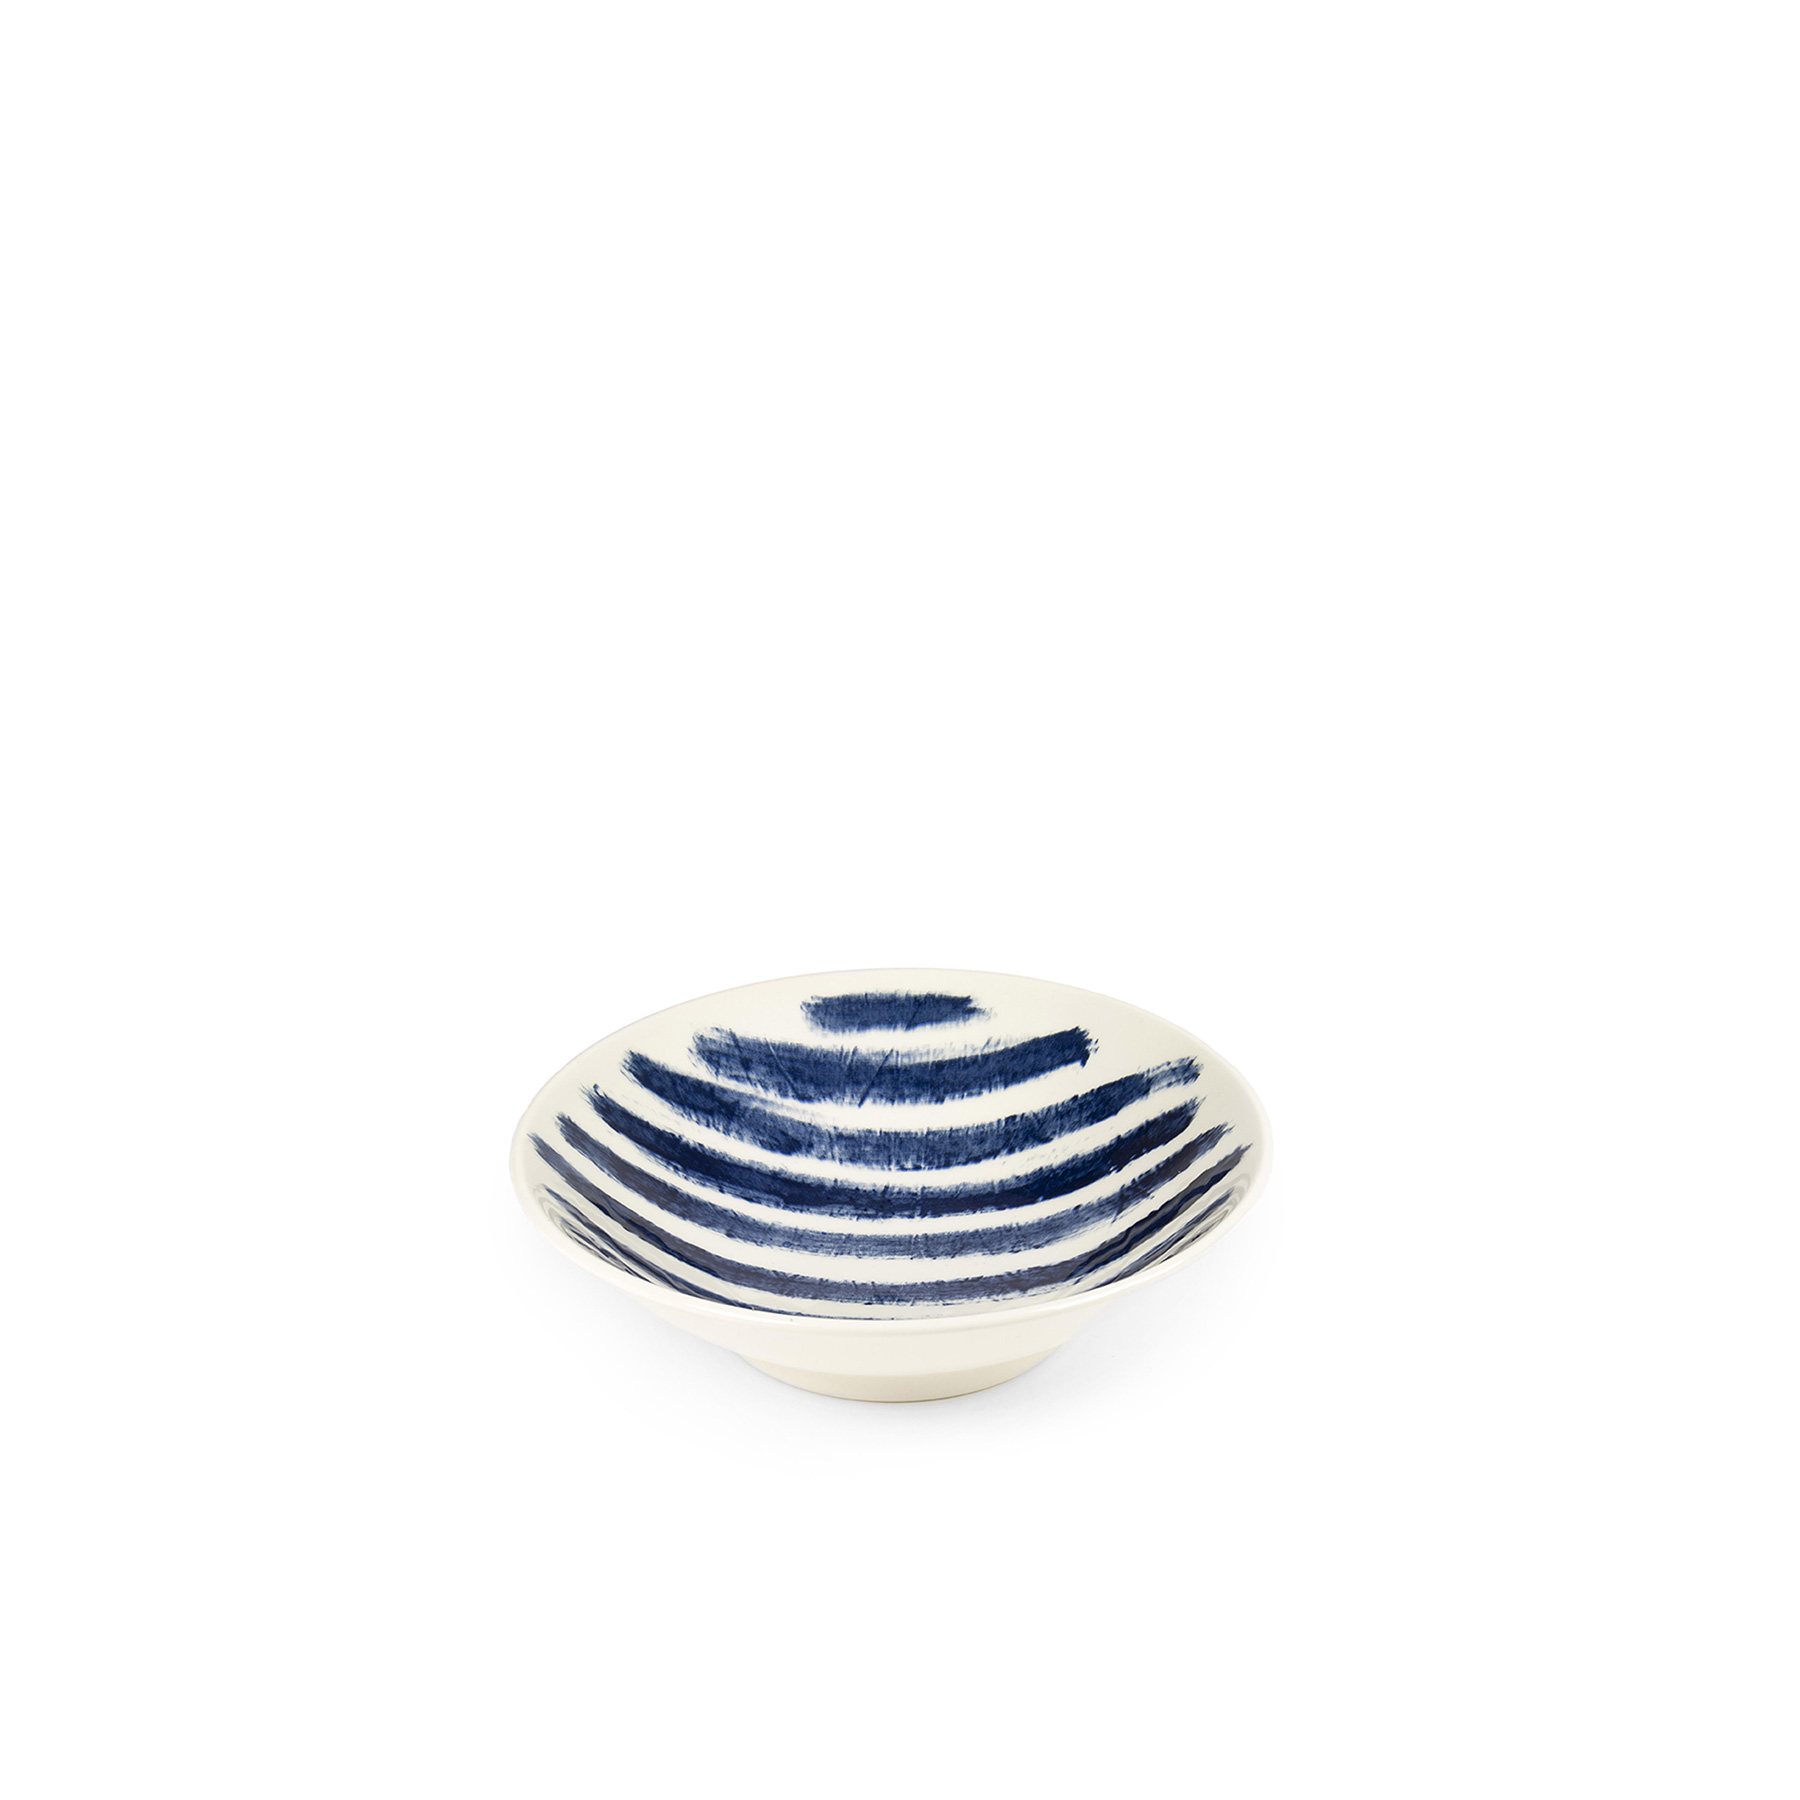 Indigo Rain Medium Serving Bowl - Faye Toogood's addition to her range of ceramic designs for 1882 Ltd. puts a fresh spin on the forms and traditions of English creamware. Indigo Rain reinterprets the homely familiarity of blue-and-white striped crockery in a new design informed by the spirit of serendipitous discovery. Representing a streamlined take on our ceramic heritage, the fine earthenware employs the familiar tones of English Delftware: cream offset with a rich, deep blue. Broad bands of indigo glaze, like painterly washes of watercolour, are applied to rough canvas and then transferred to the pieces – the characteristic grain of the fabric imbues the delicate ceramics with the hardworking spirit of dark-dyed denim.  | Matter of Stuff